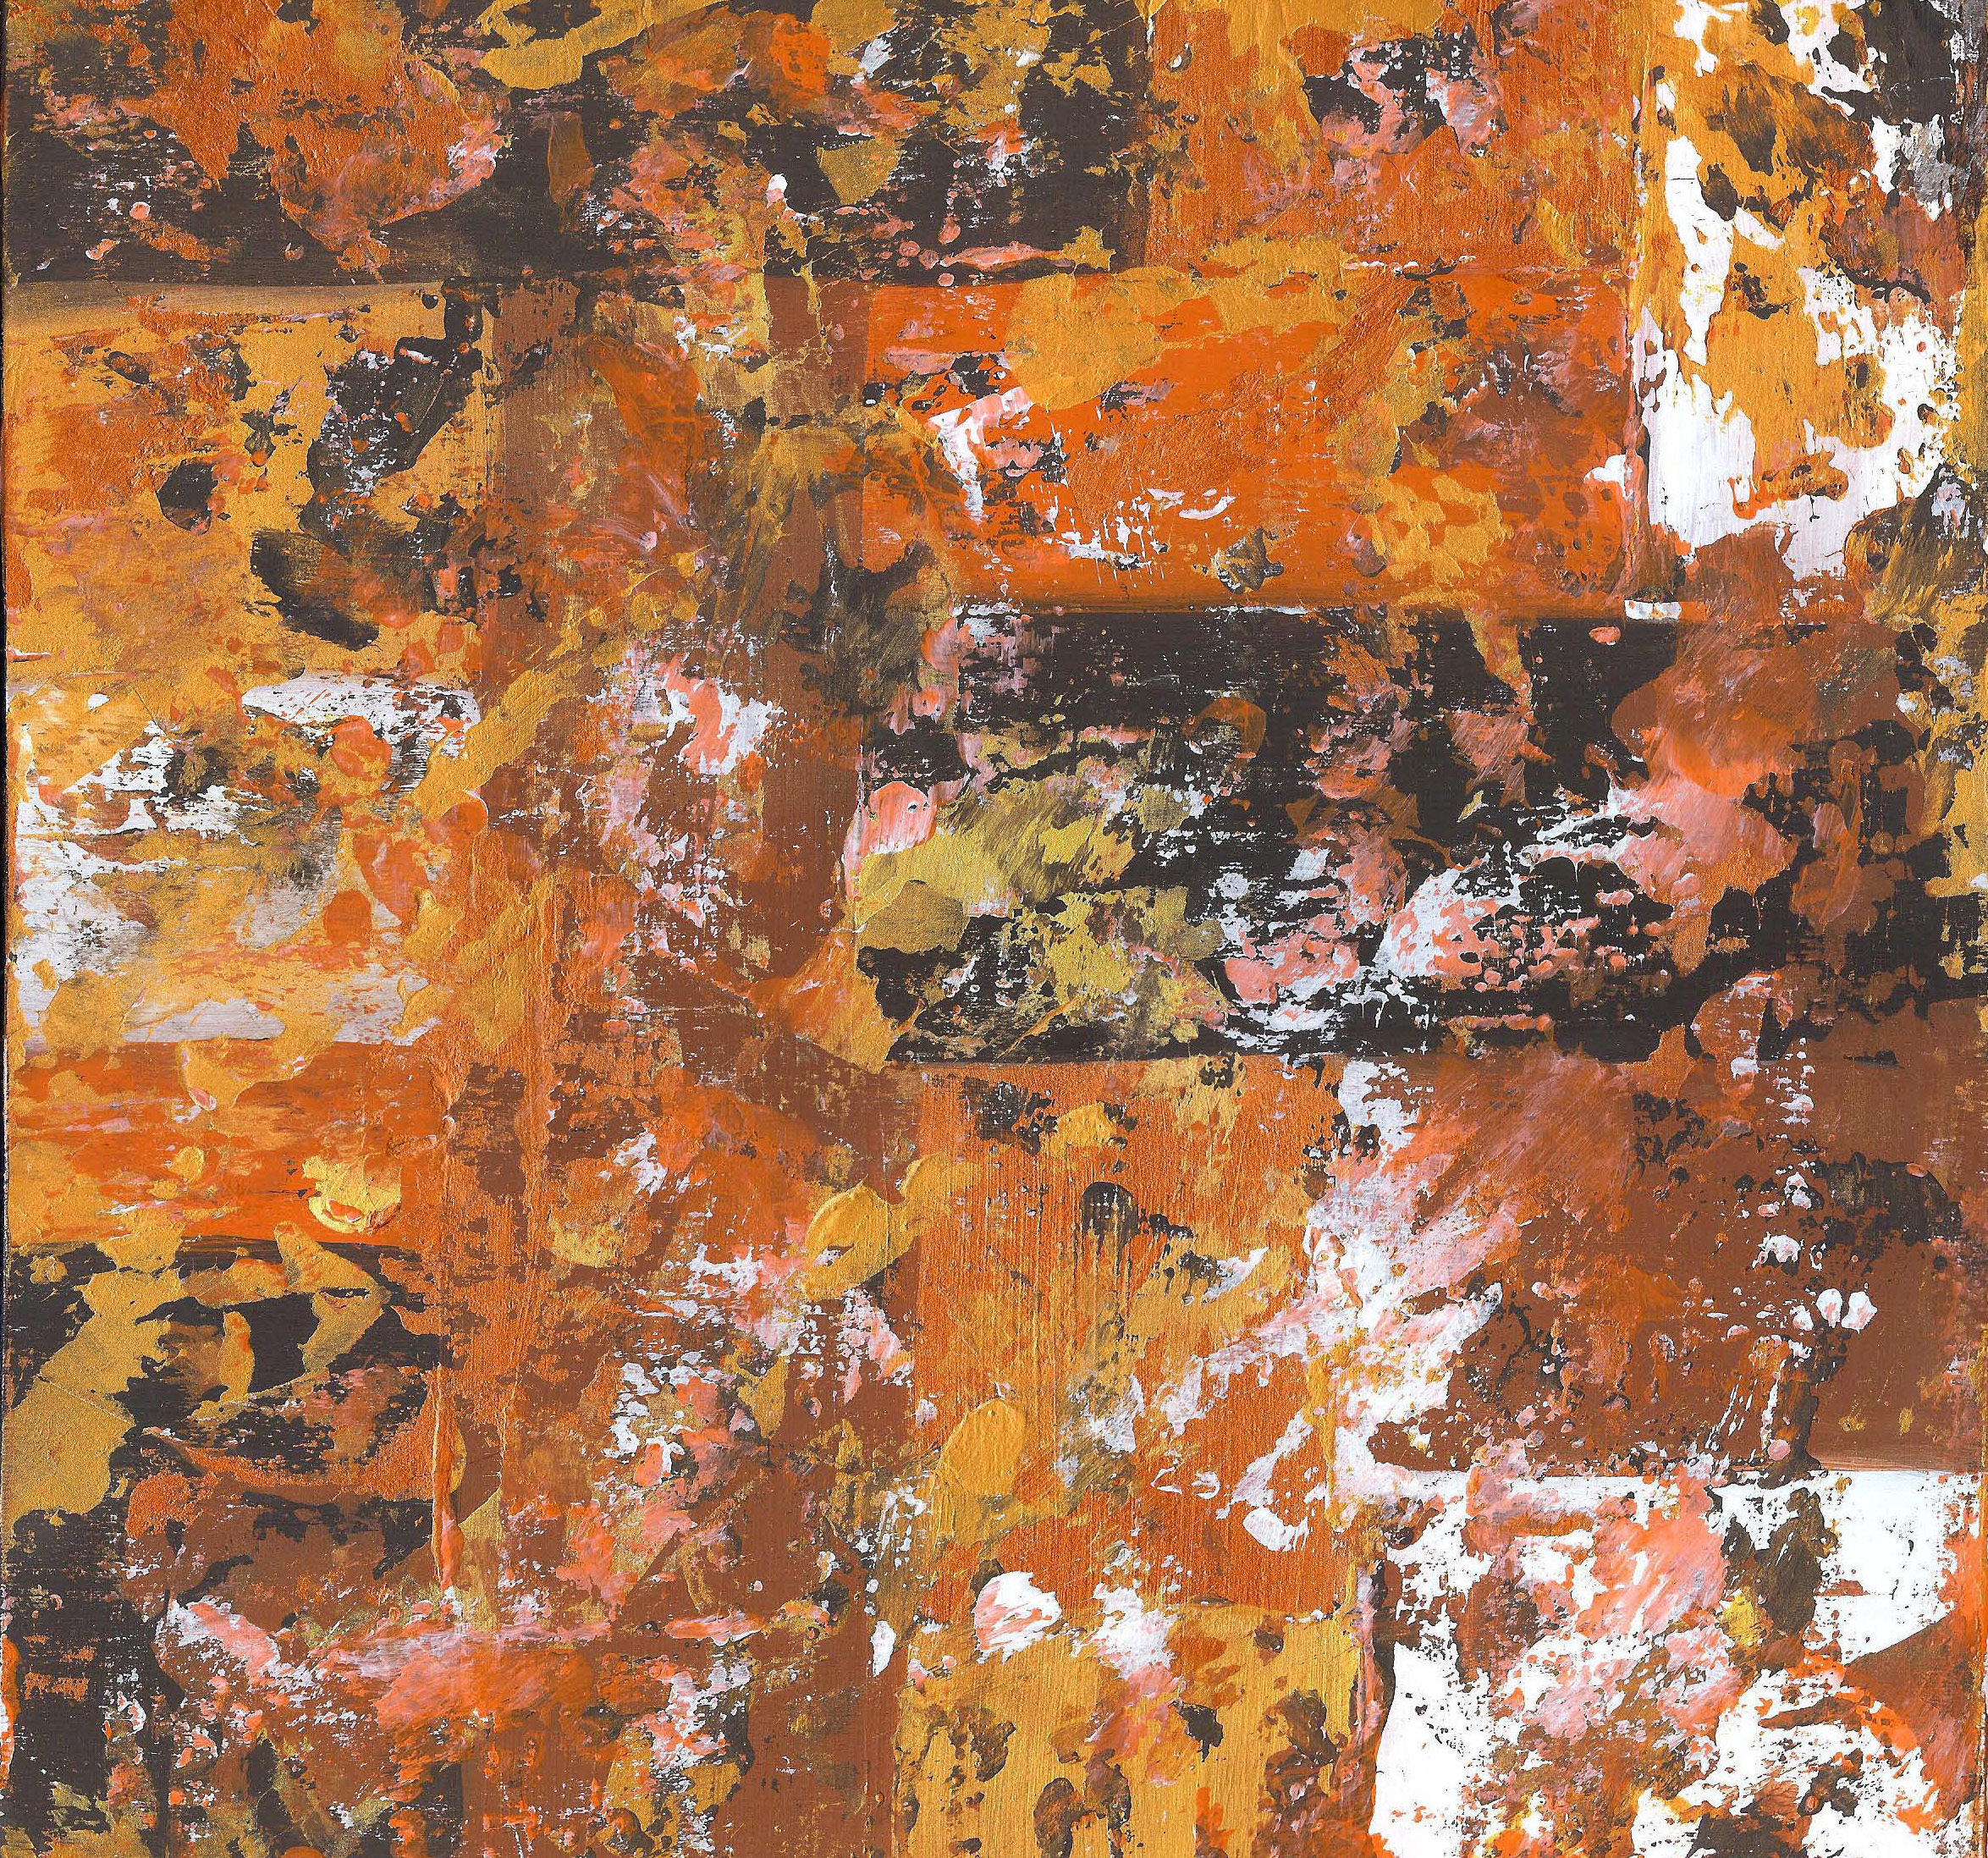 Abstract Autumn - Acrylic - 12 X 12 - Sold - Print Available